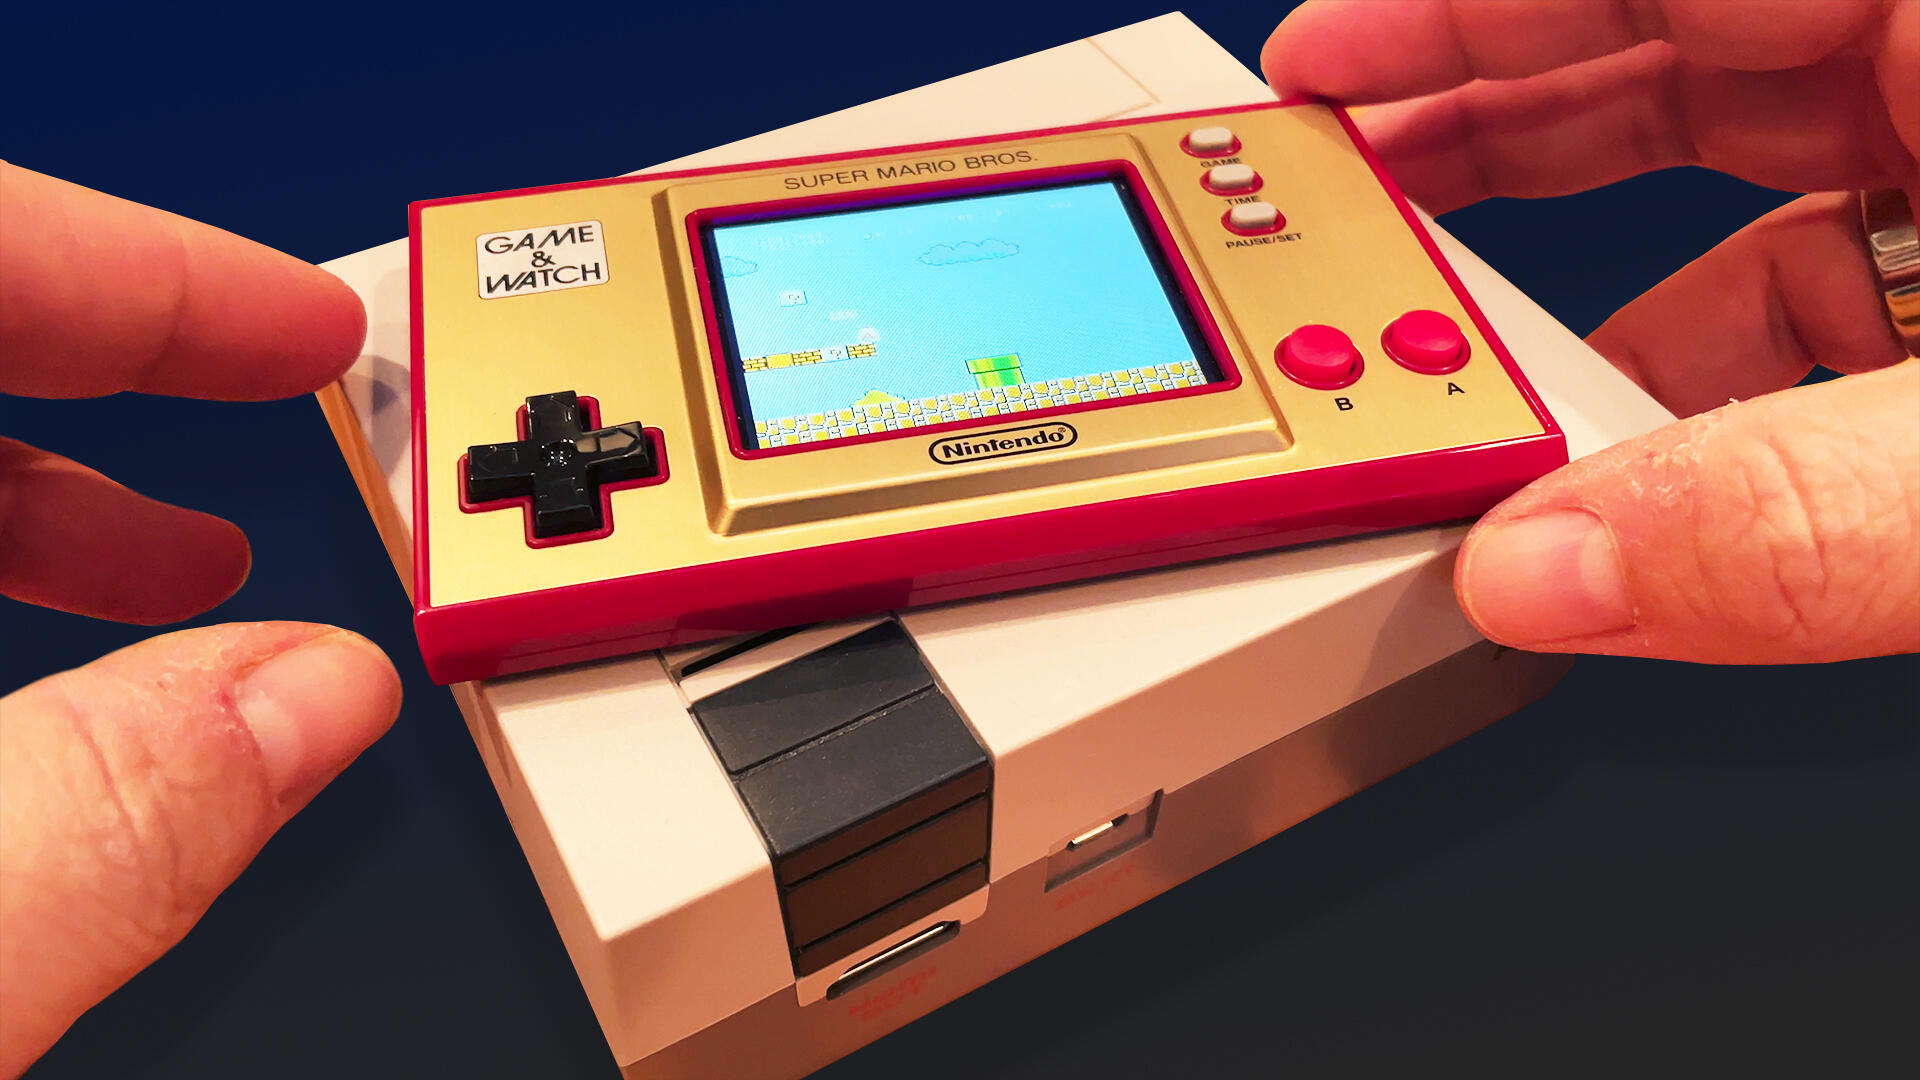 Video: Game & Watch Super Mario Bros. is two Nintendo '80s hits rolled into one